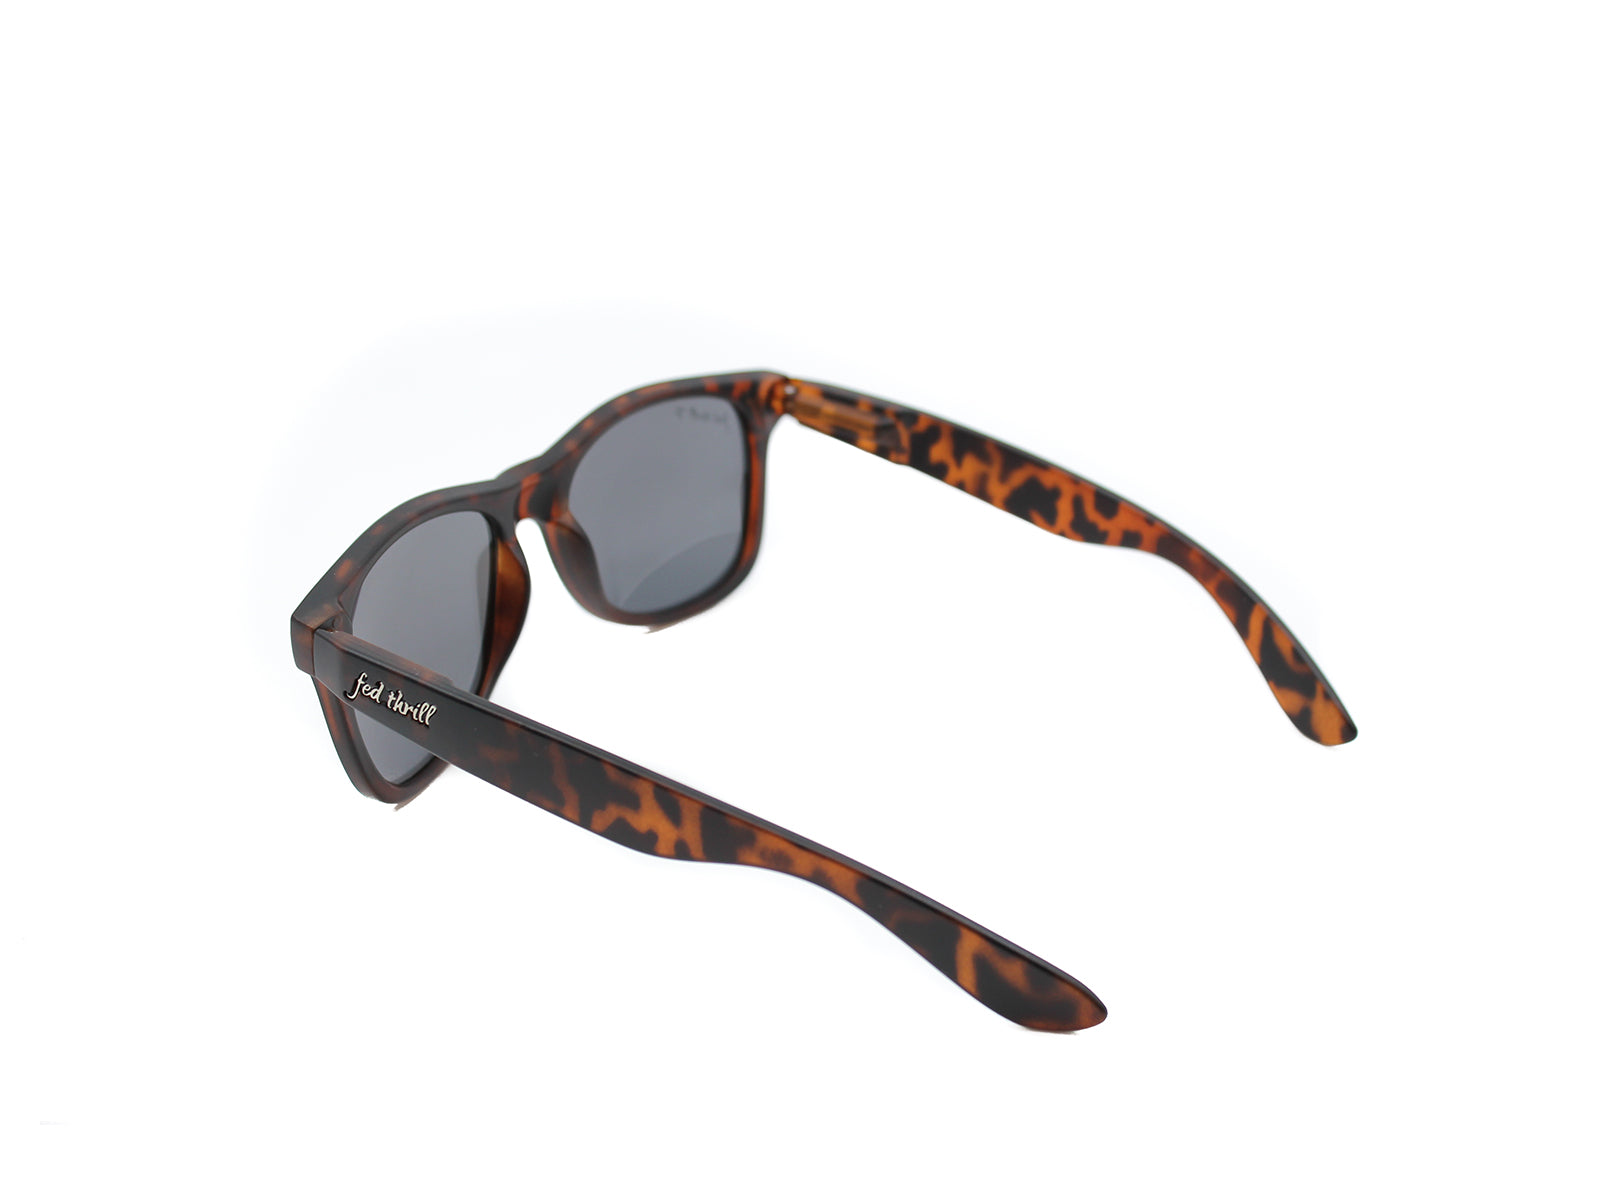 Fultons - High Tides: Matte Tortoise / Mirrored Purple Polarized